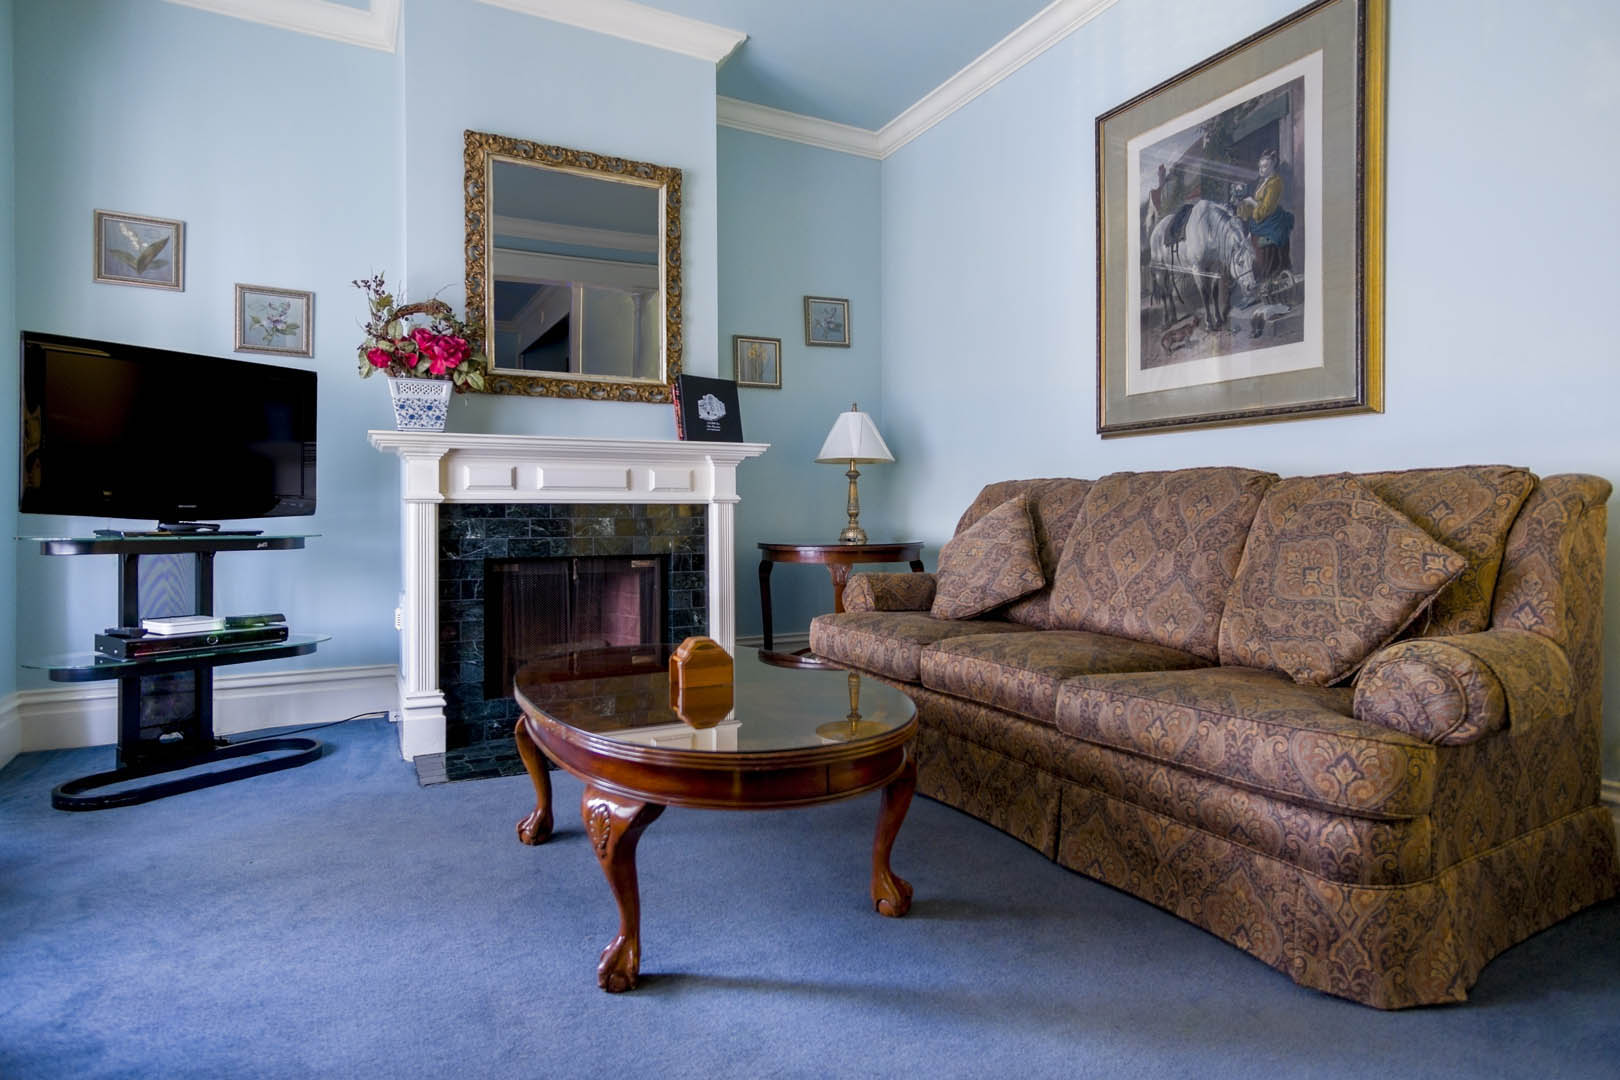 A beautiful living room area at VRI's Nob Hill Inn in San Francisco, California.